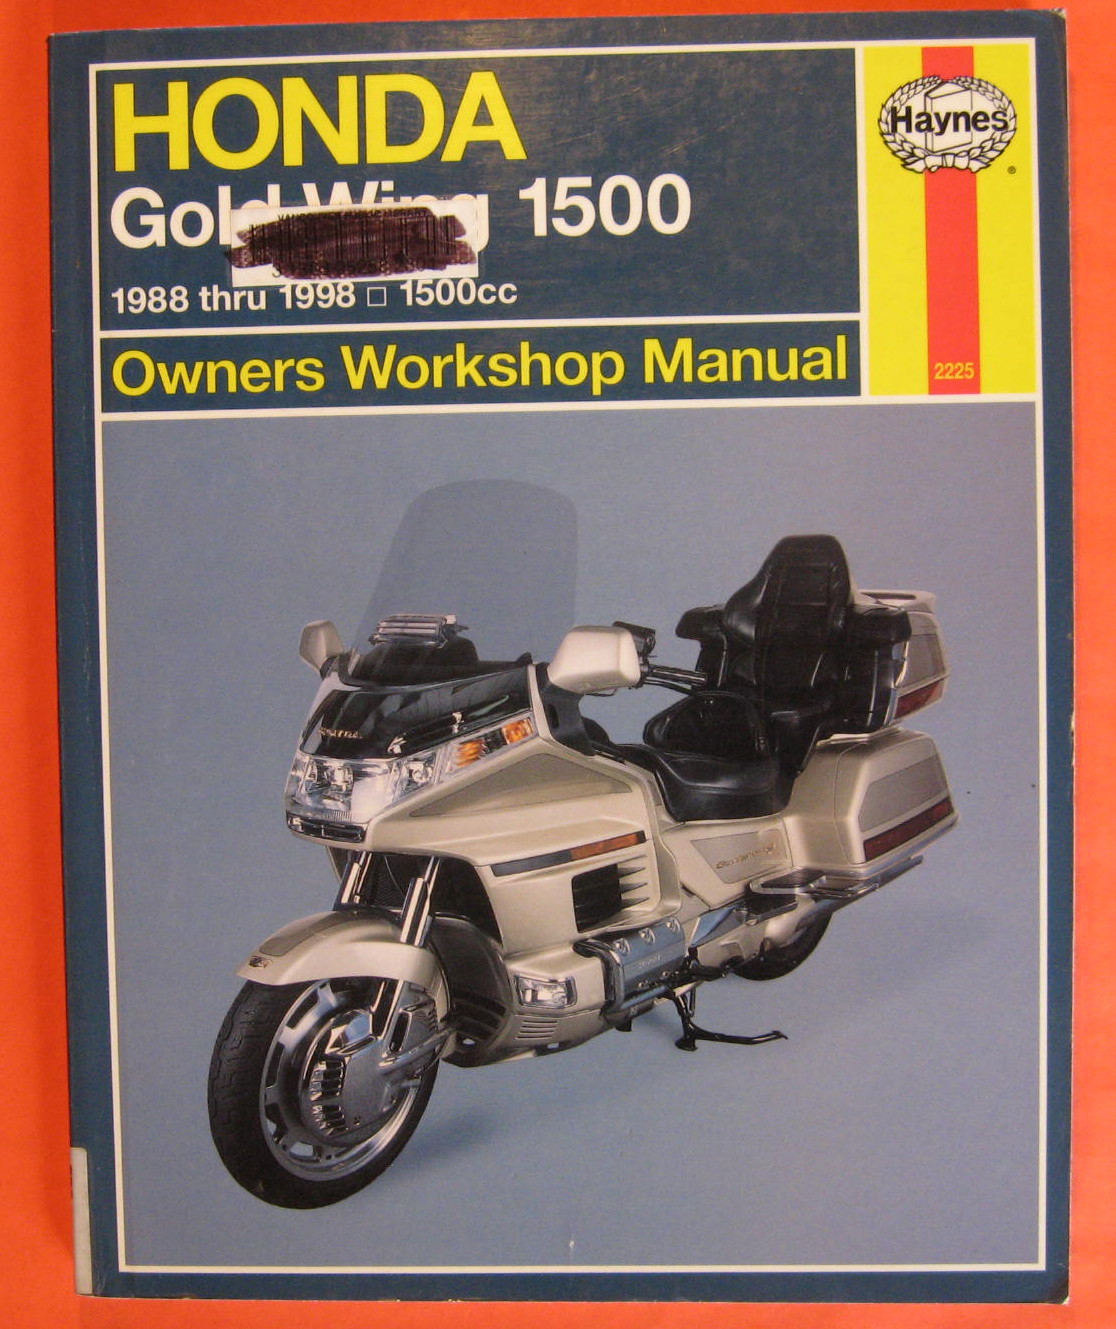 Honda GL1500 Gold Wing Owners Workshop Manual: Models Covered Honda Gl1500 Gold Wing, 1502 Cc. 1988 Through 1998, Ahlstrand, Alan